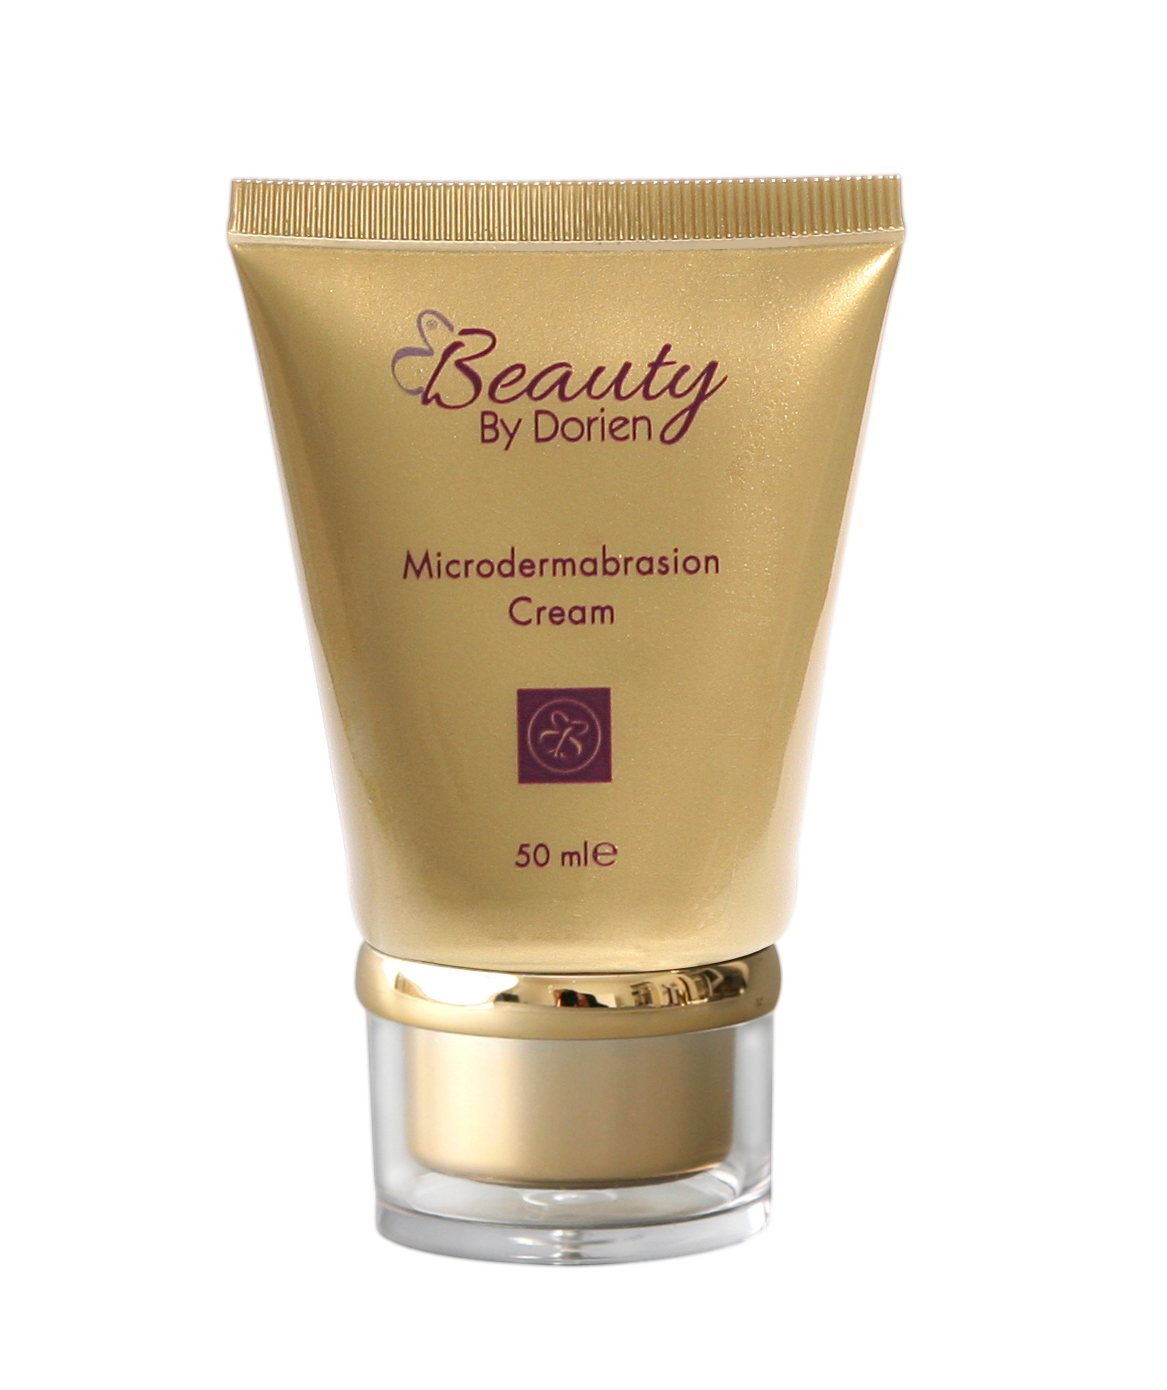 Microdermabrasion Cream